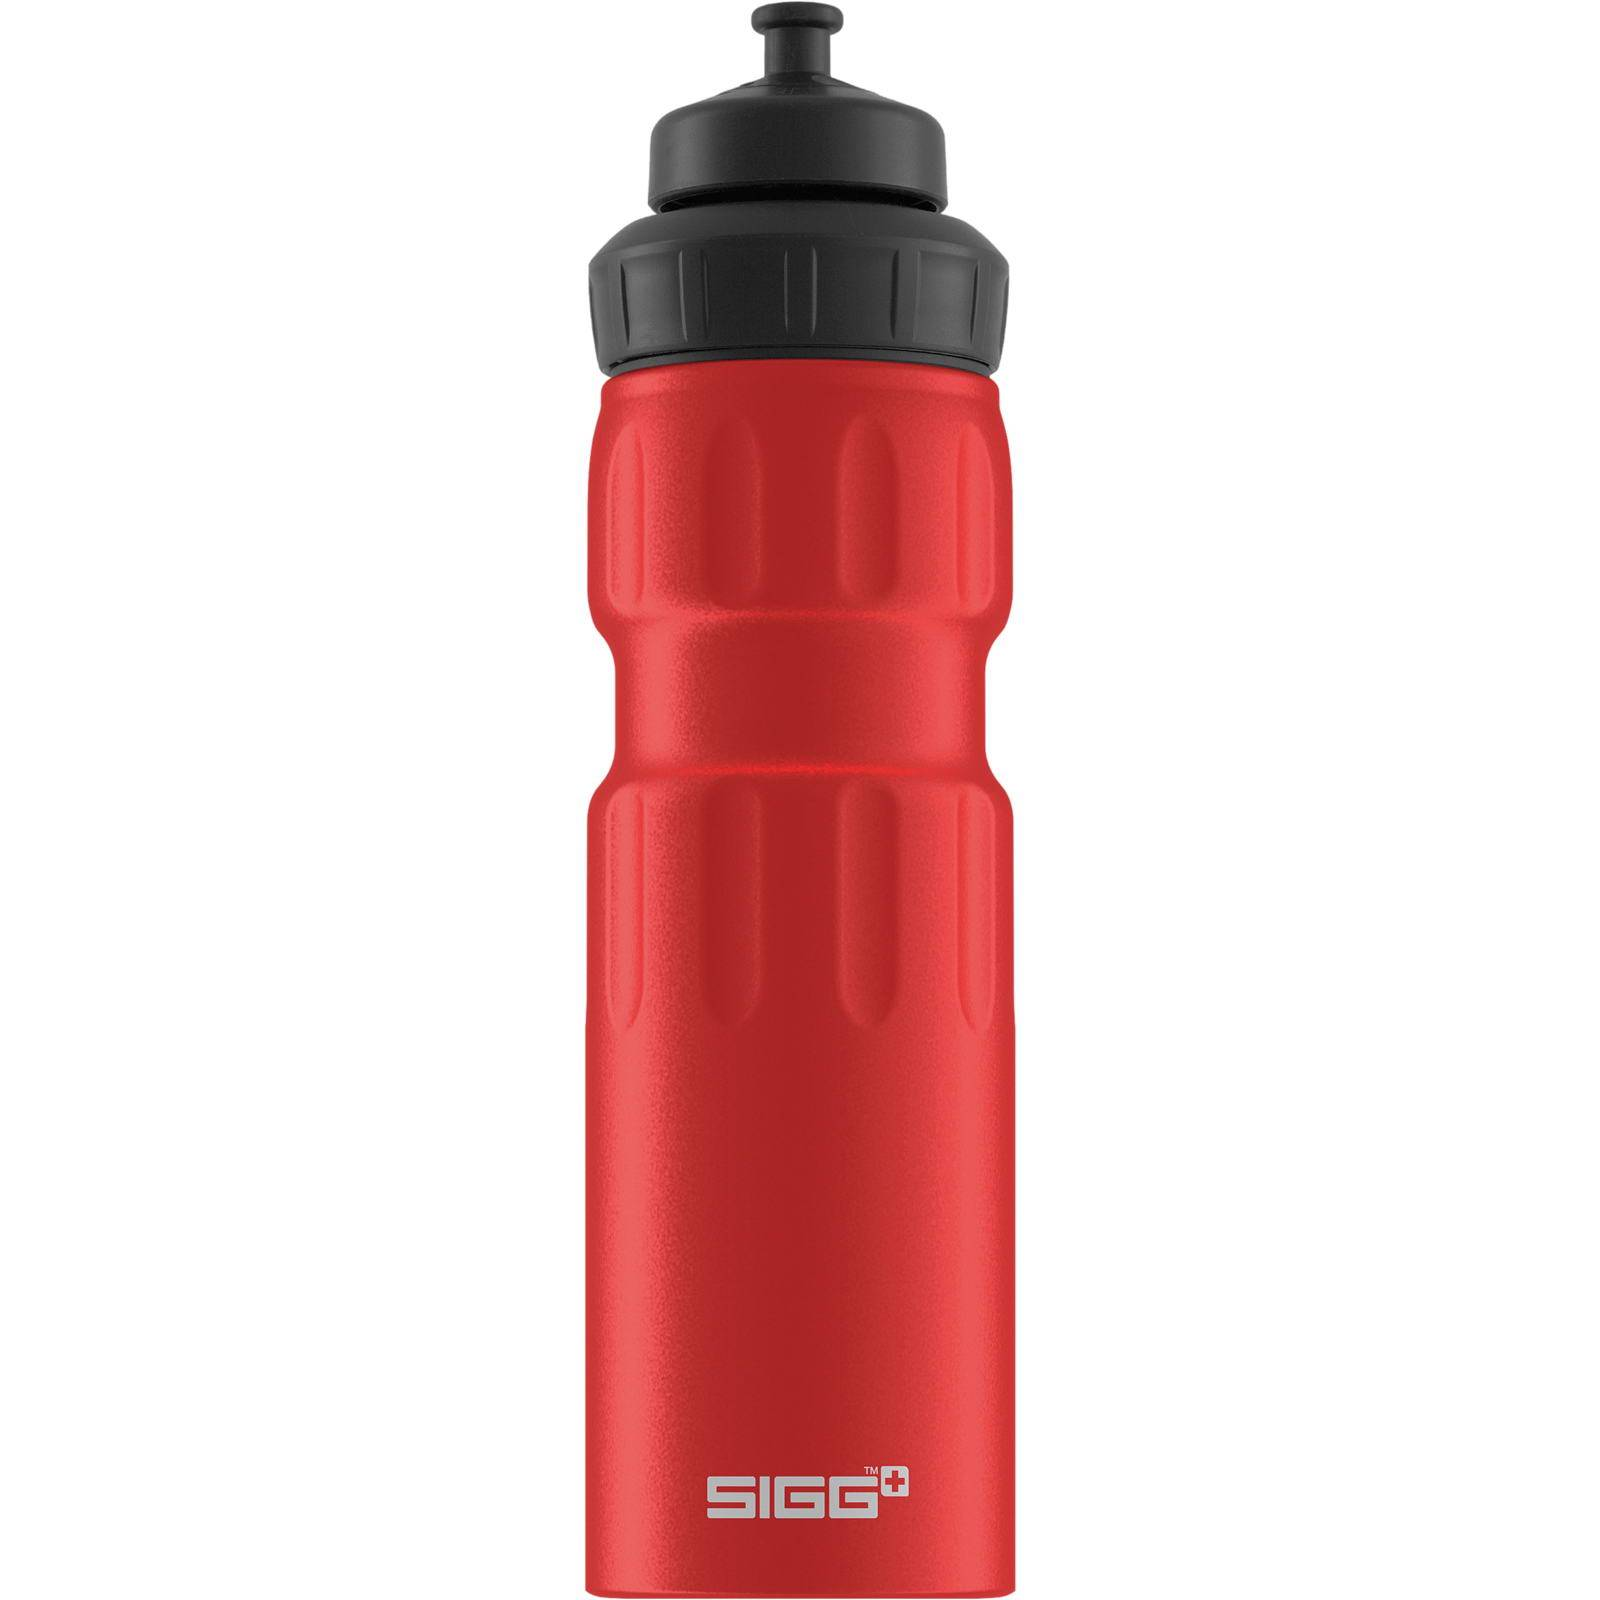 Sigg WMB Sport Touch 0.75L - Alutrinkflasche red - Bild 3